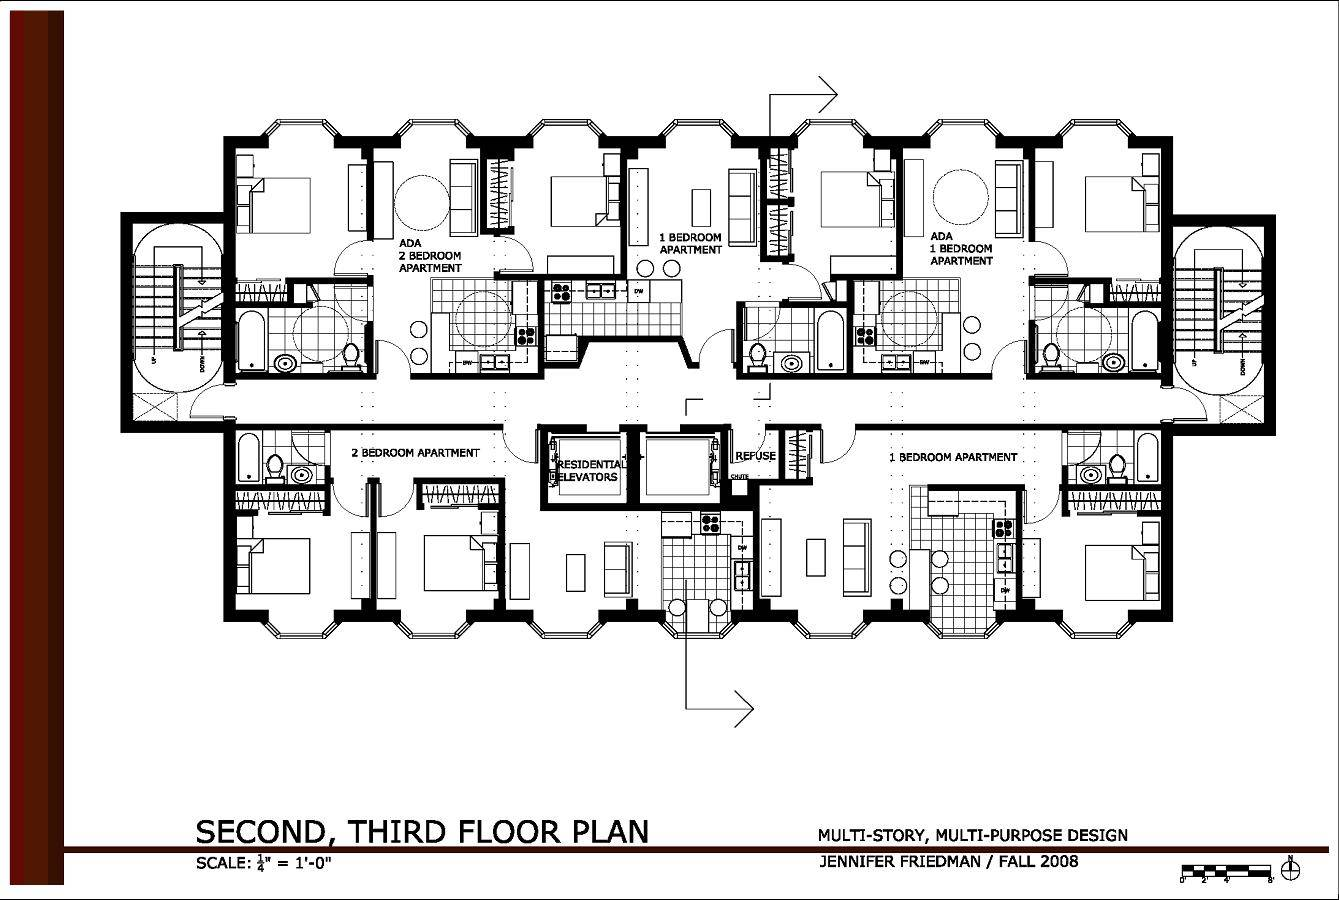 Two Story Office Building Plansstoryhome Plans Ideas Picture Floor Plan Of Two Storey Office Building